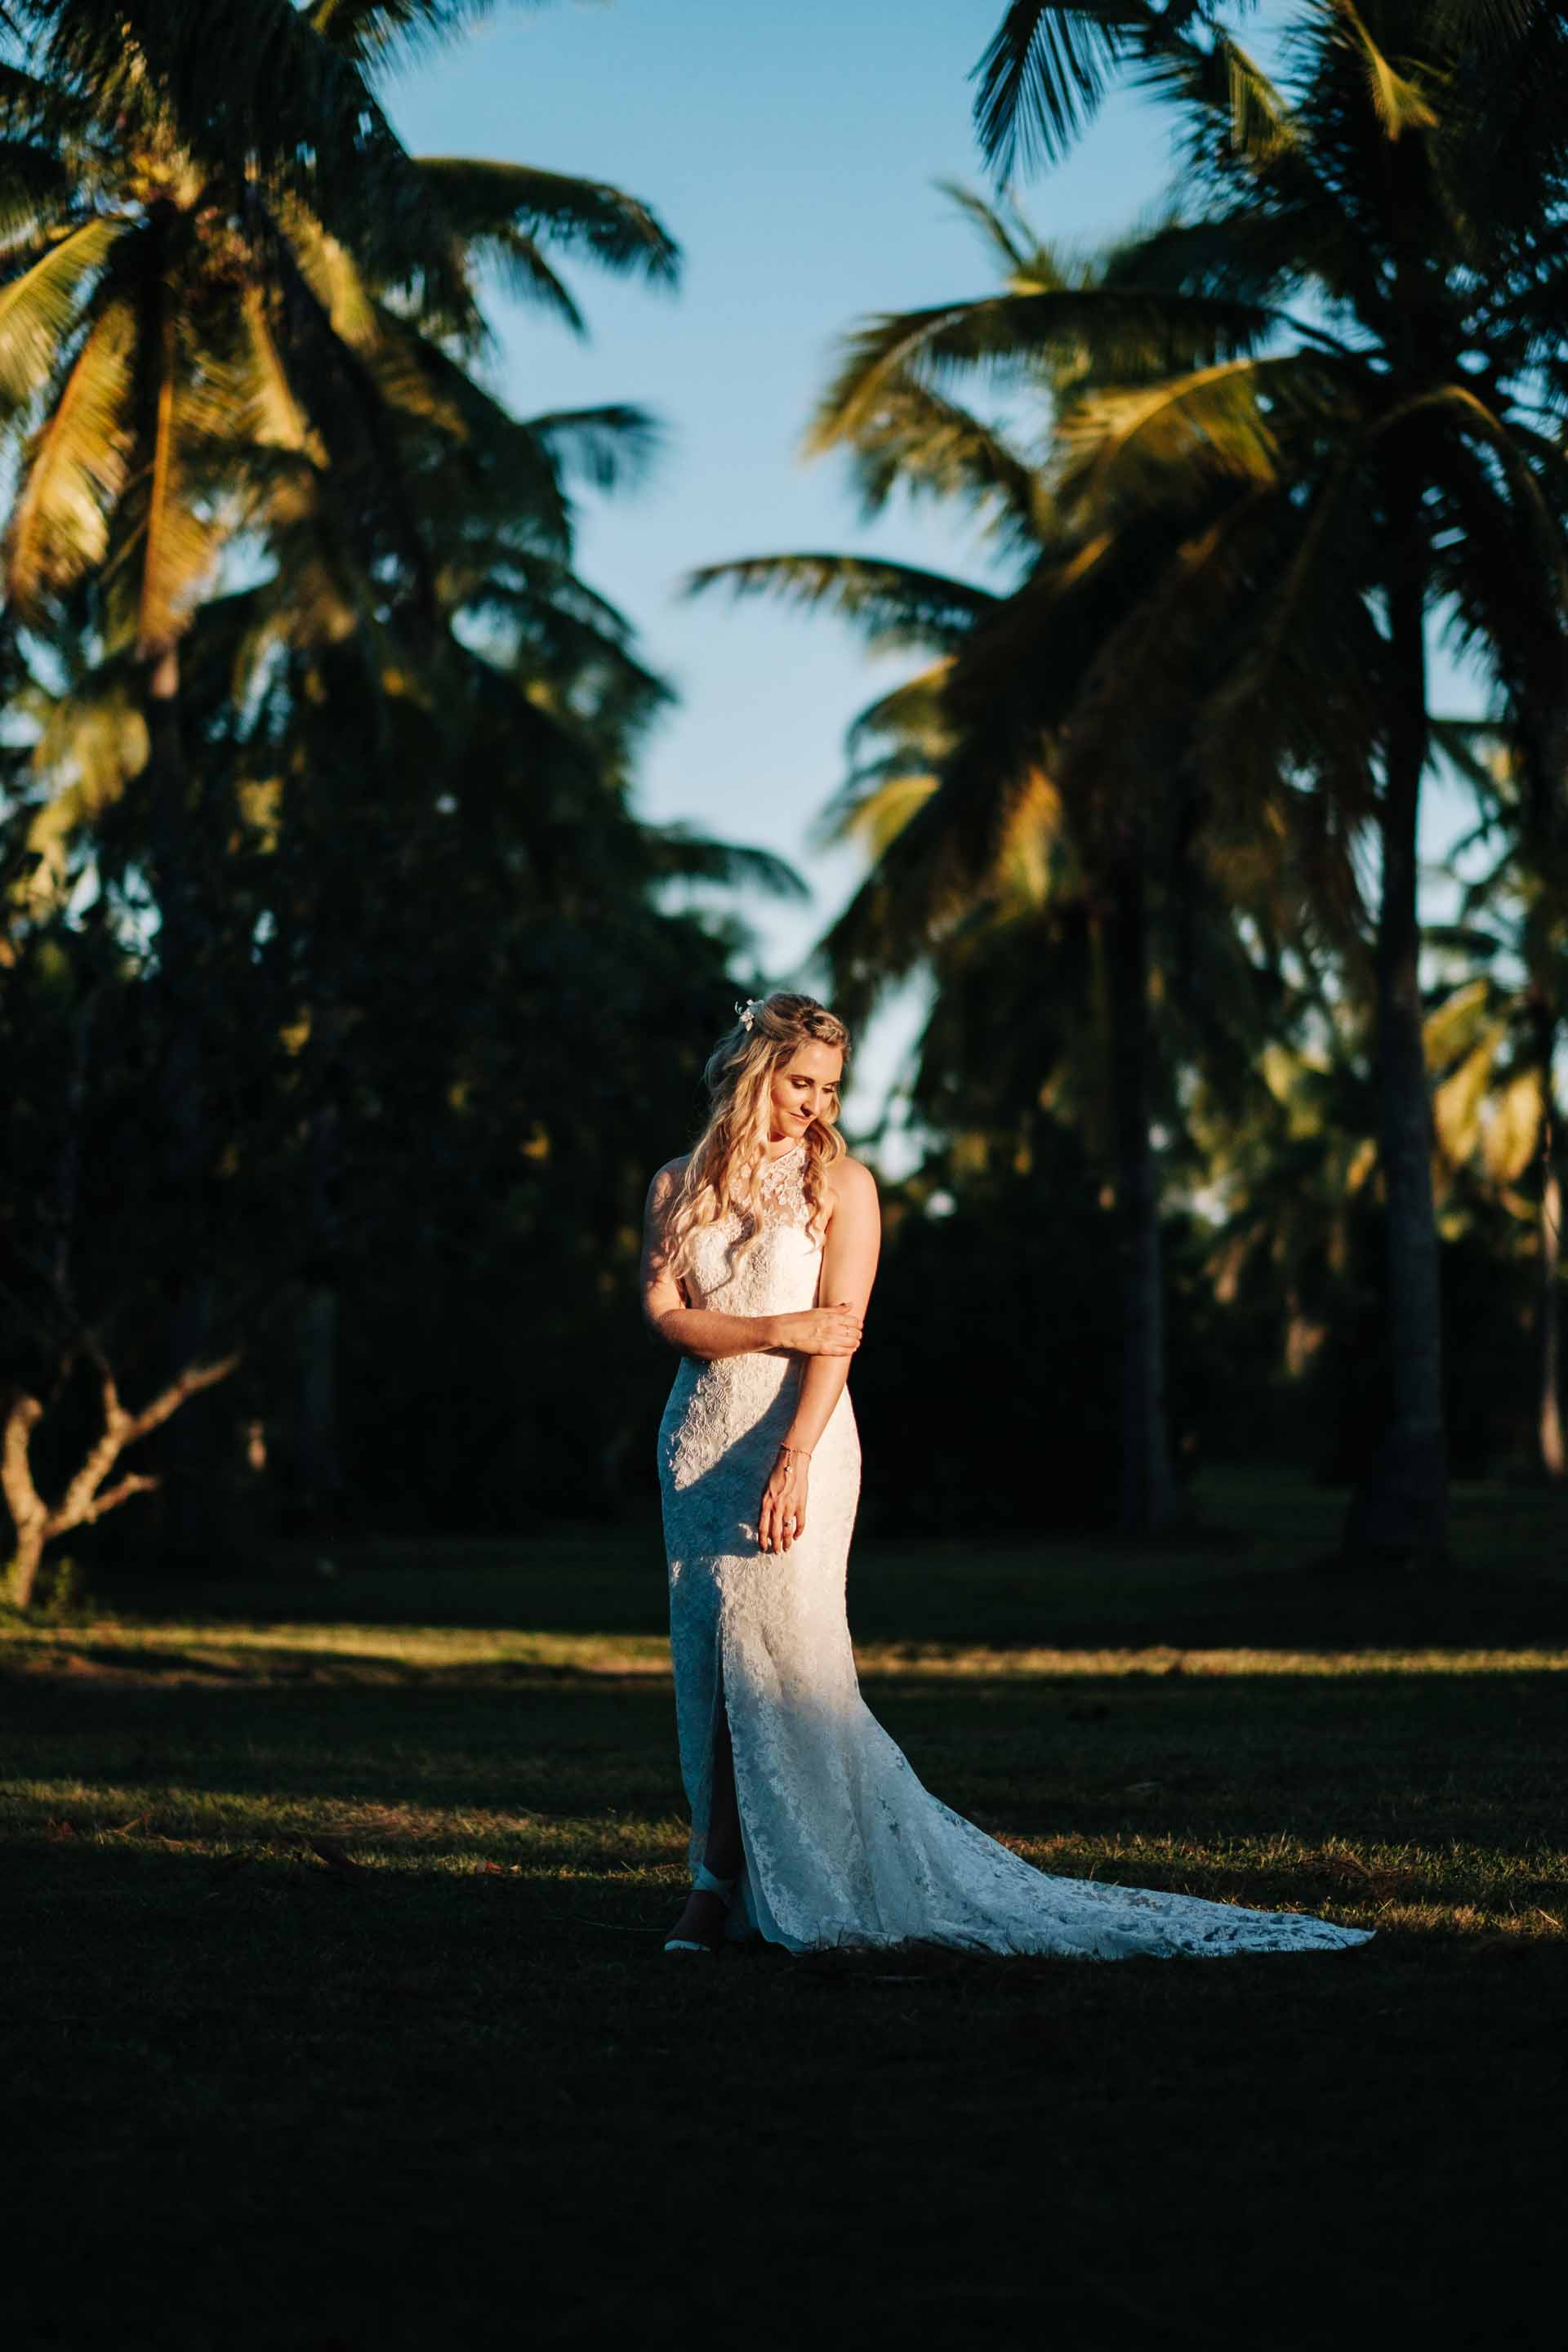 full length portrait of the bride between rows of coconut trees